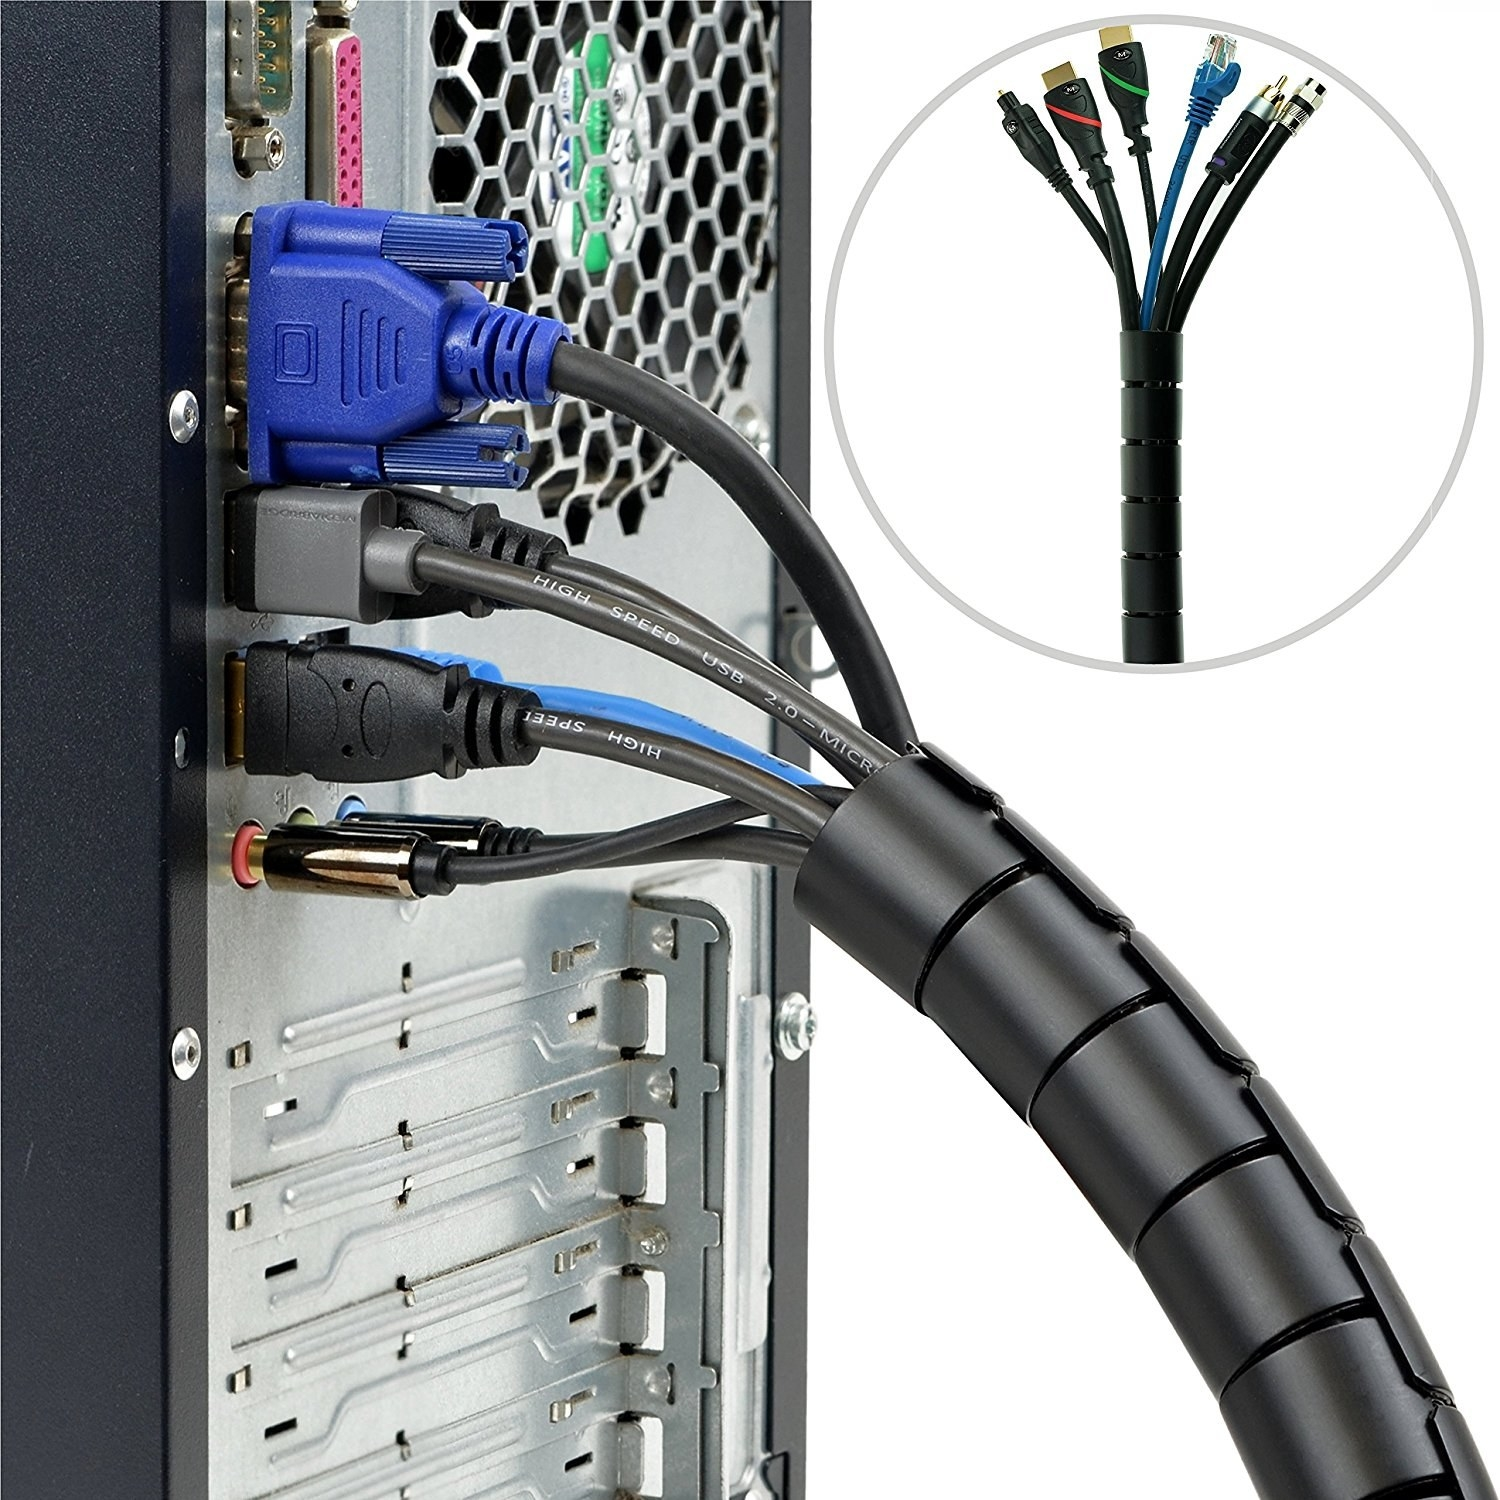 Organizer Kit To Solve All Your Flat Panel Tv Wiring Problems